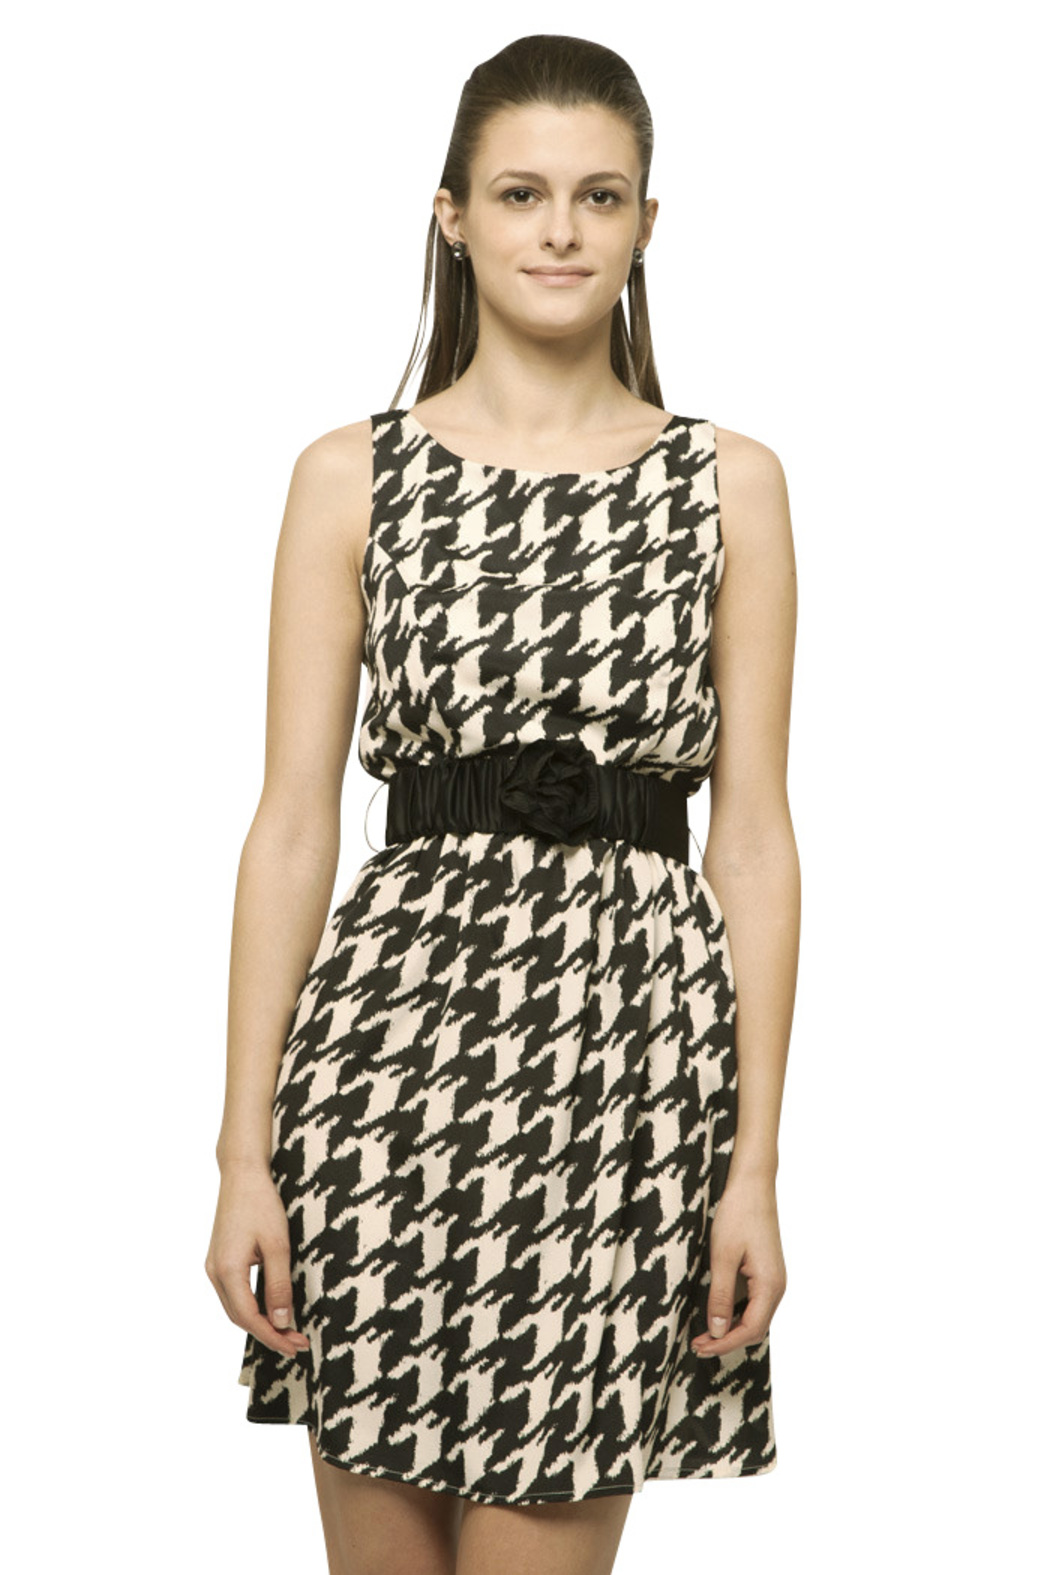 Young At Heart Houndstooth Flower Dress From Belmont By Thirty Petals Shoptiques